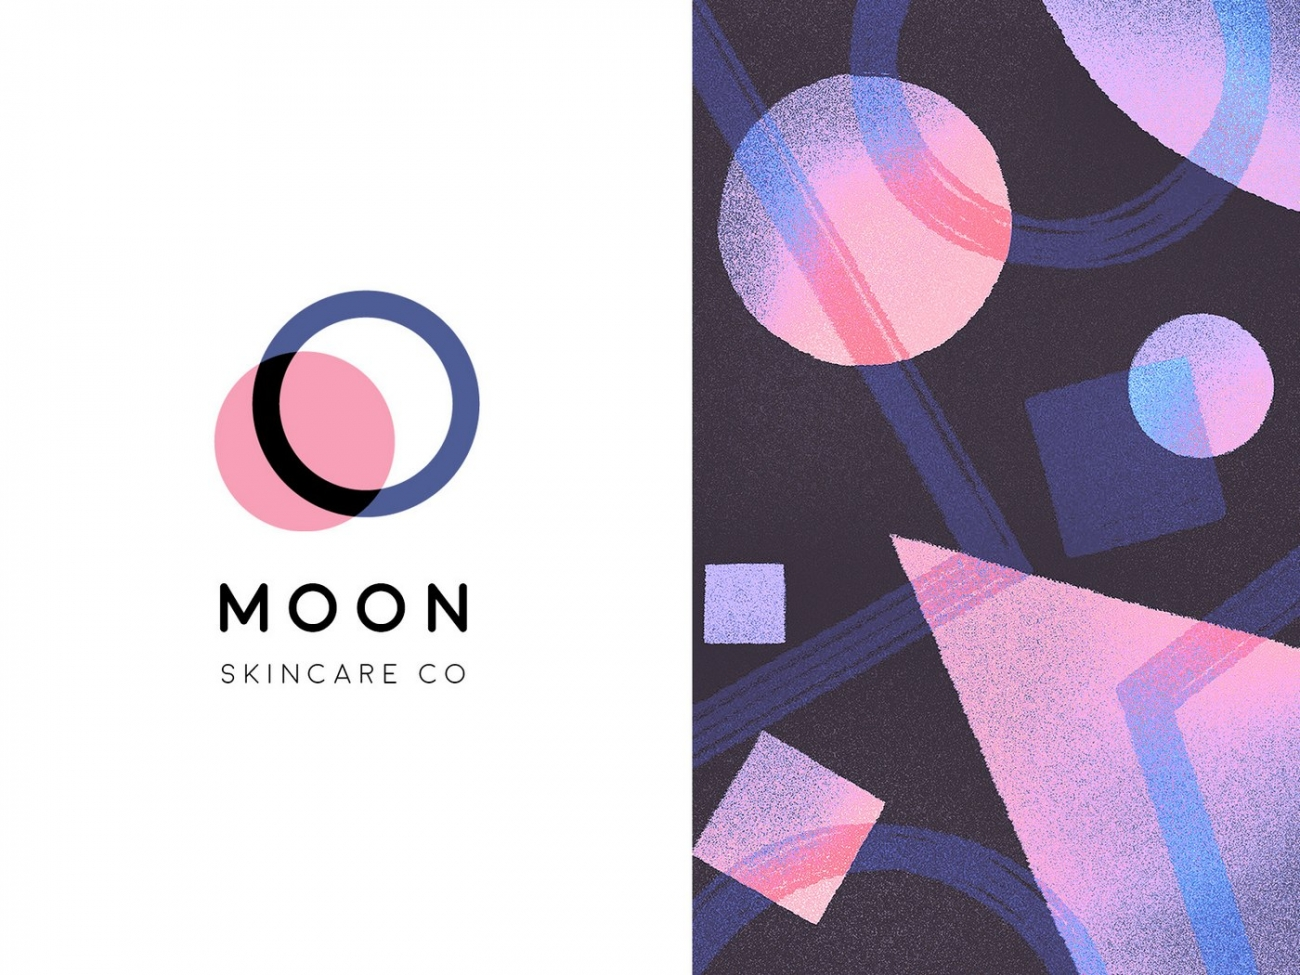 Go To MOON Skincare Company